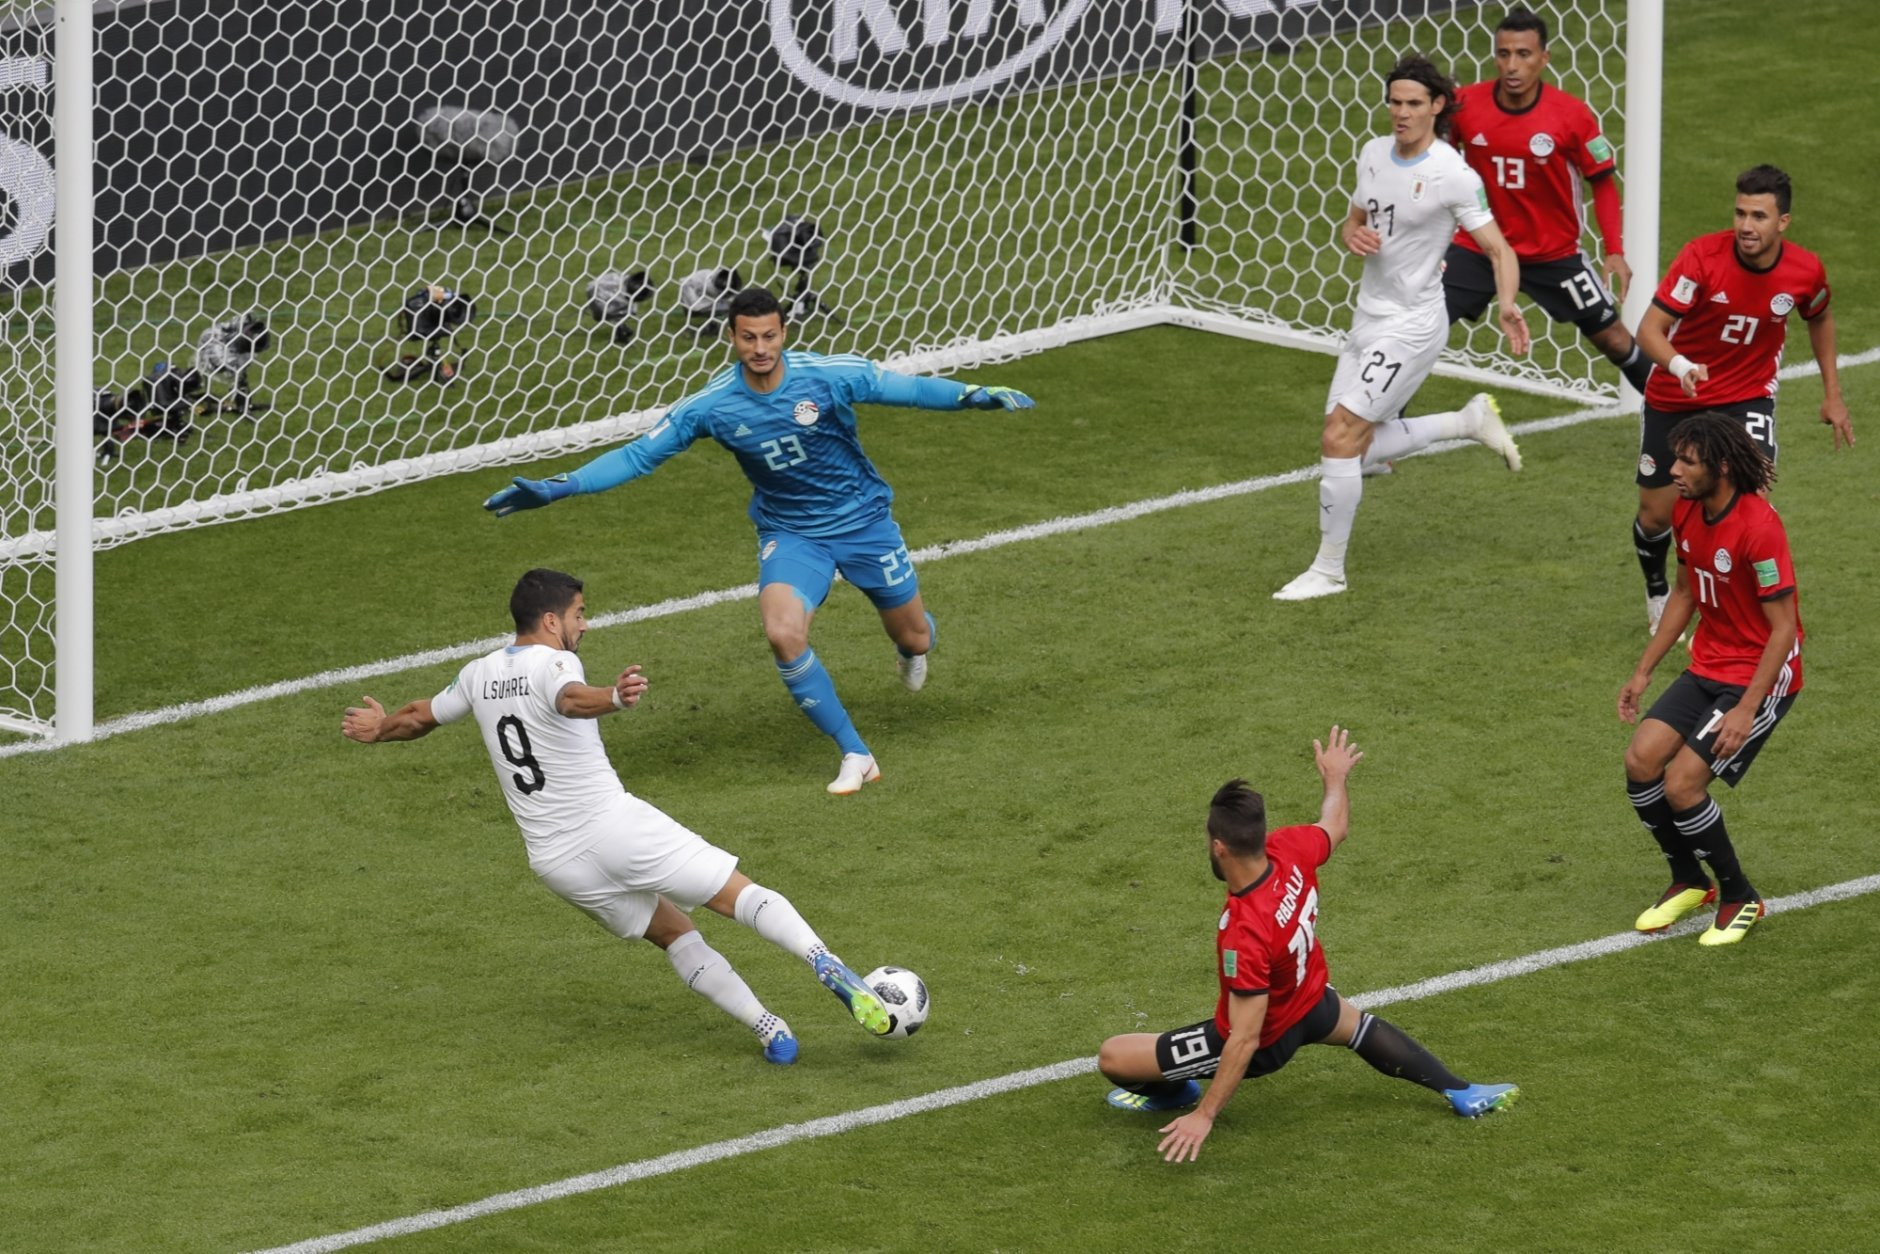 Uruguay's Luis Suarez, left, scores a disallowed goal during the group A match between Egypt and Uruguay at the 2018 soccer World Cup in the Yekaterinburg Arena in Yekaterinburg, Russia, Friday, June 15, 2018. (AP Photo/Vadim Ghirda)